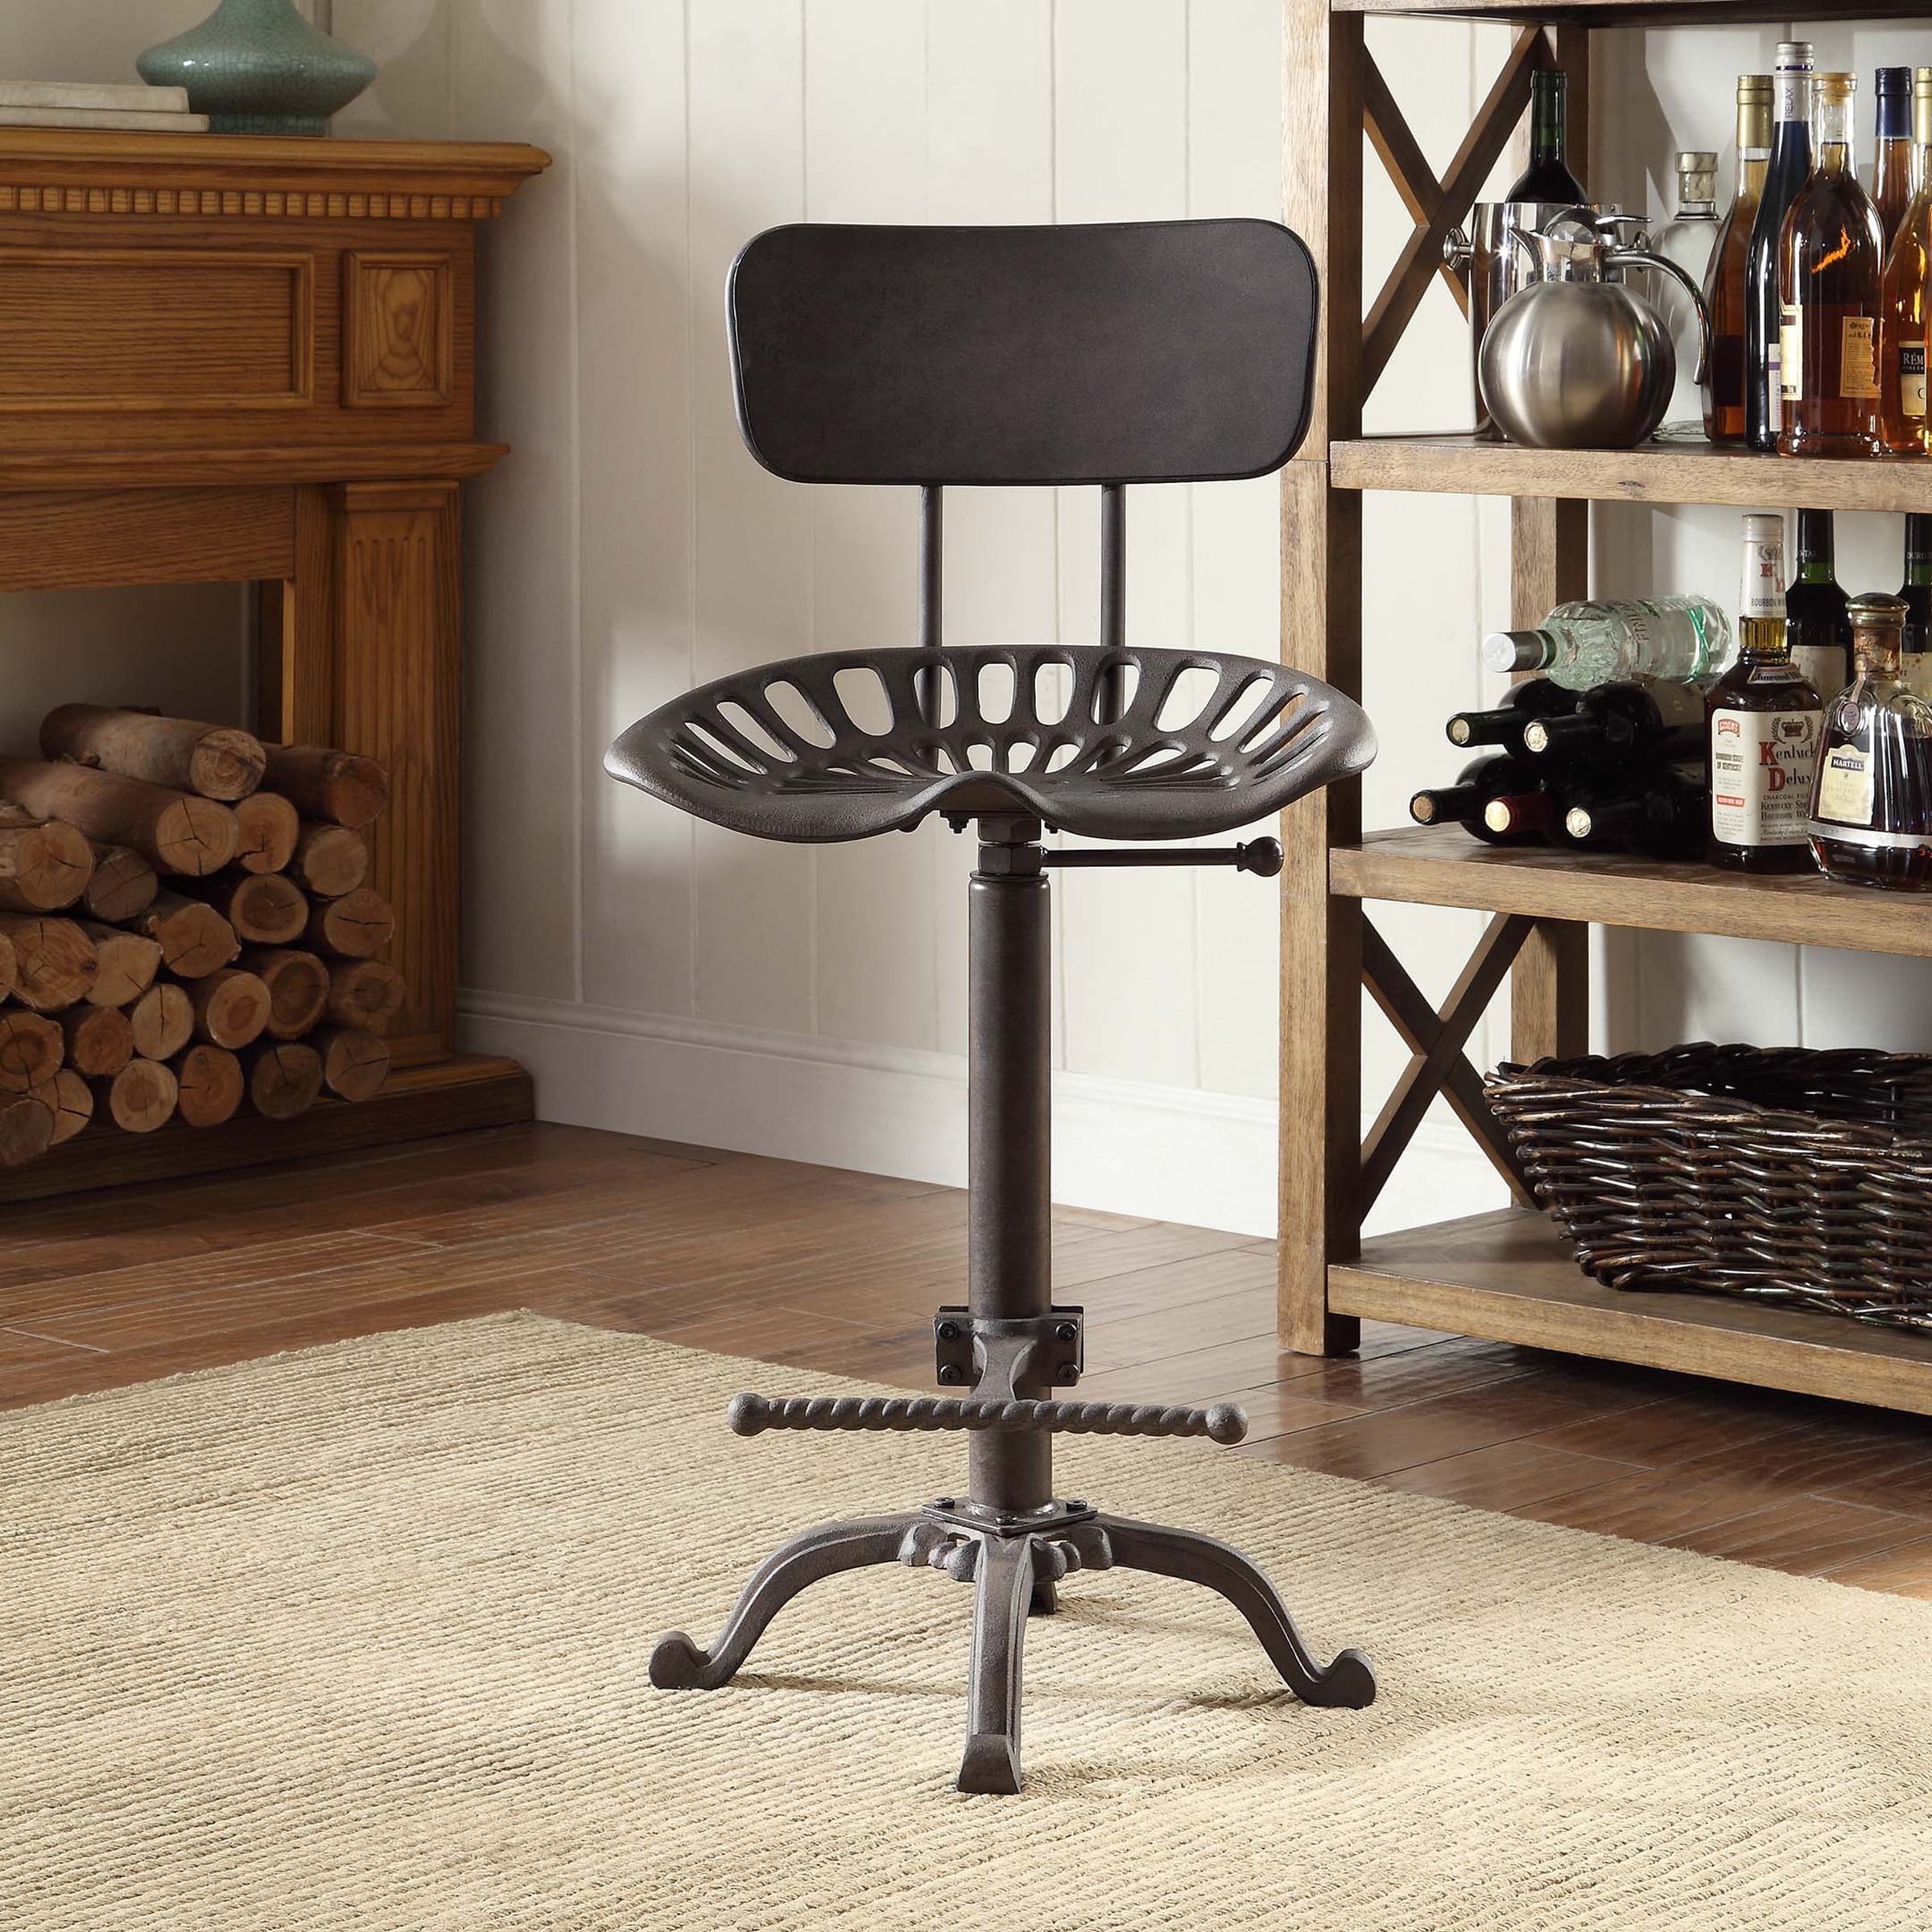 Pine Canopy Shawnee Grey Cast Iron Tractor Seat Stool (In...